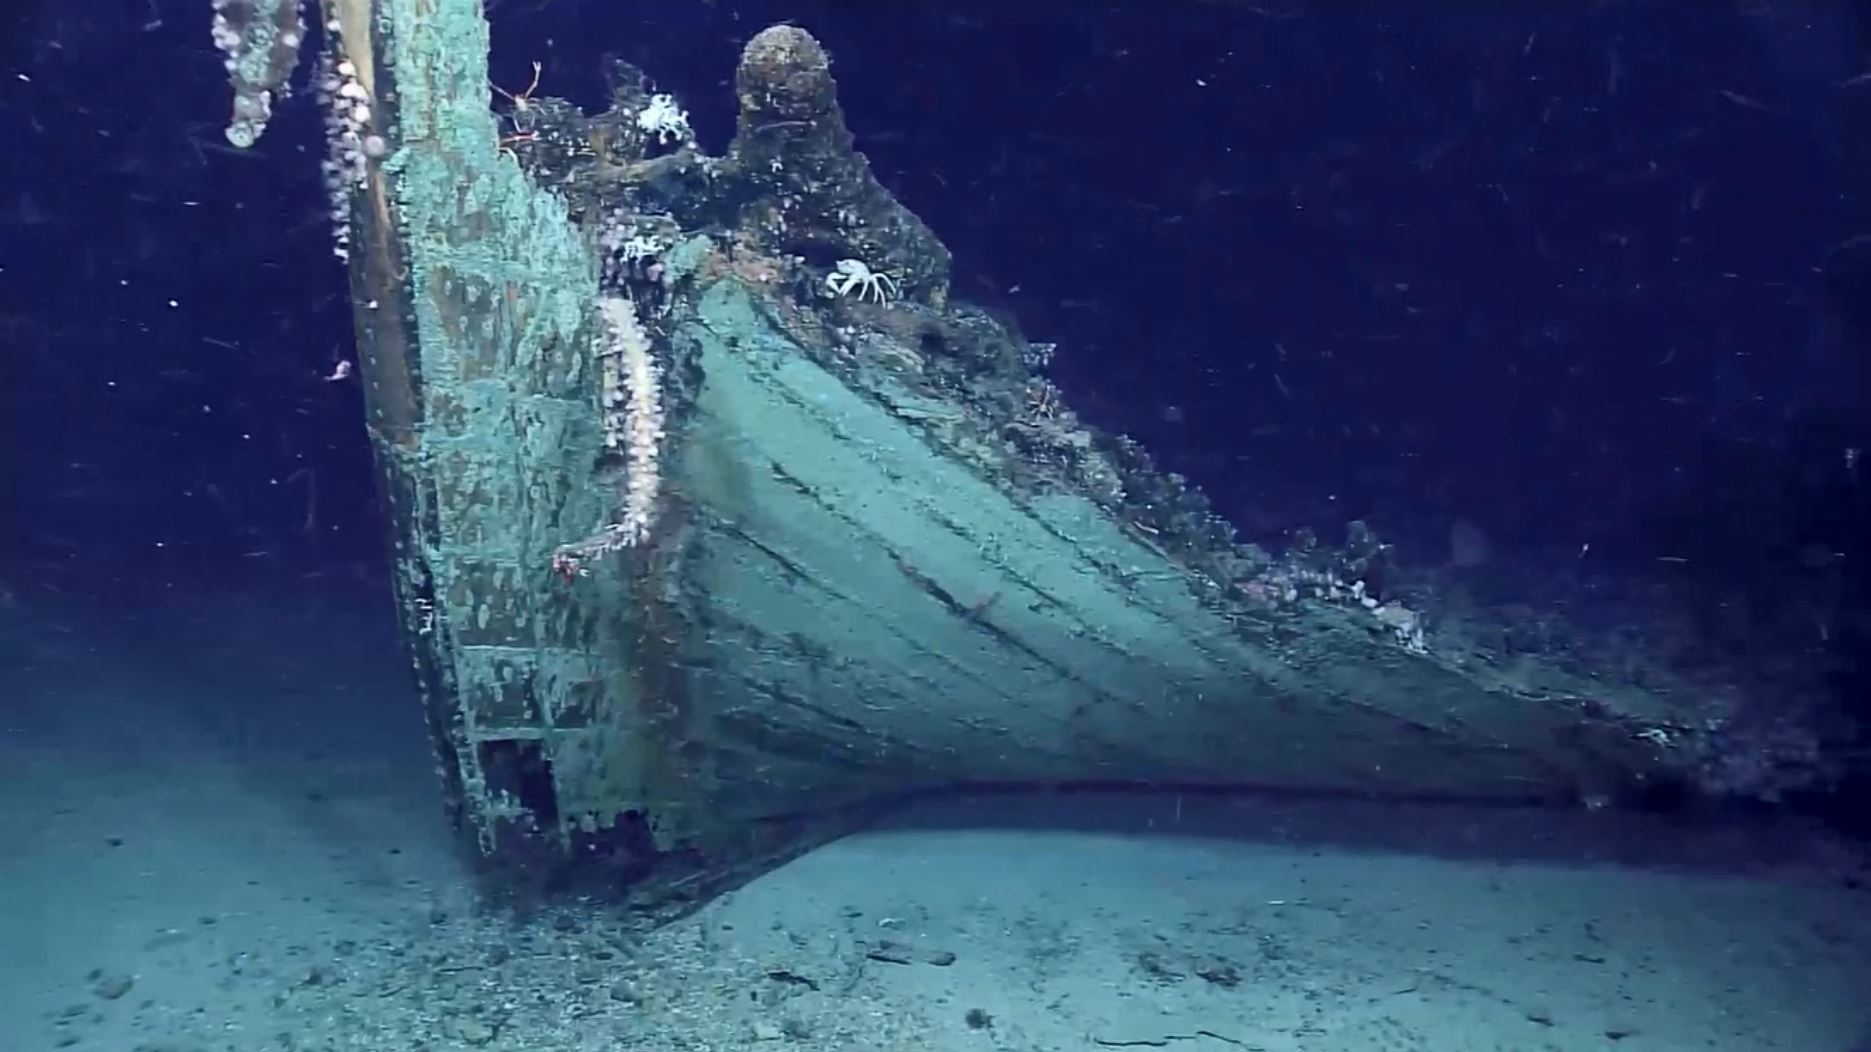 NOAA accidentally discovers mysterious shipwreck from mid-1800s